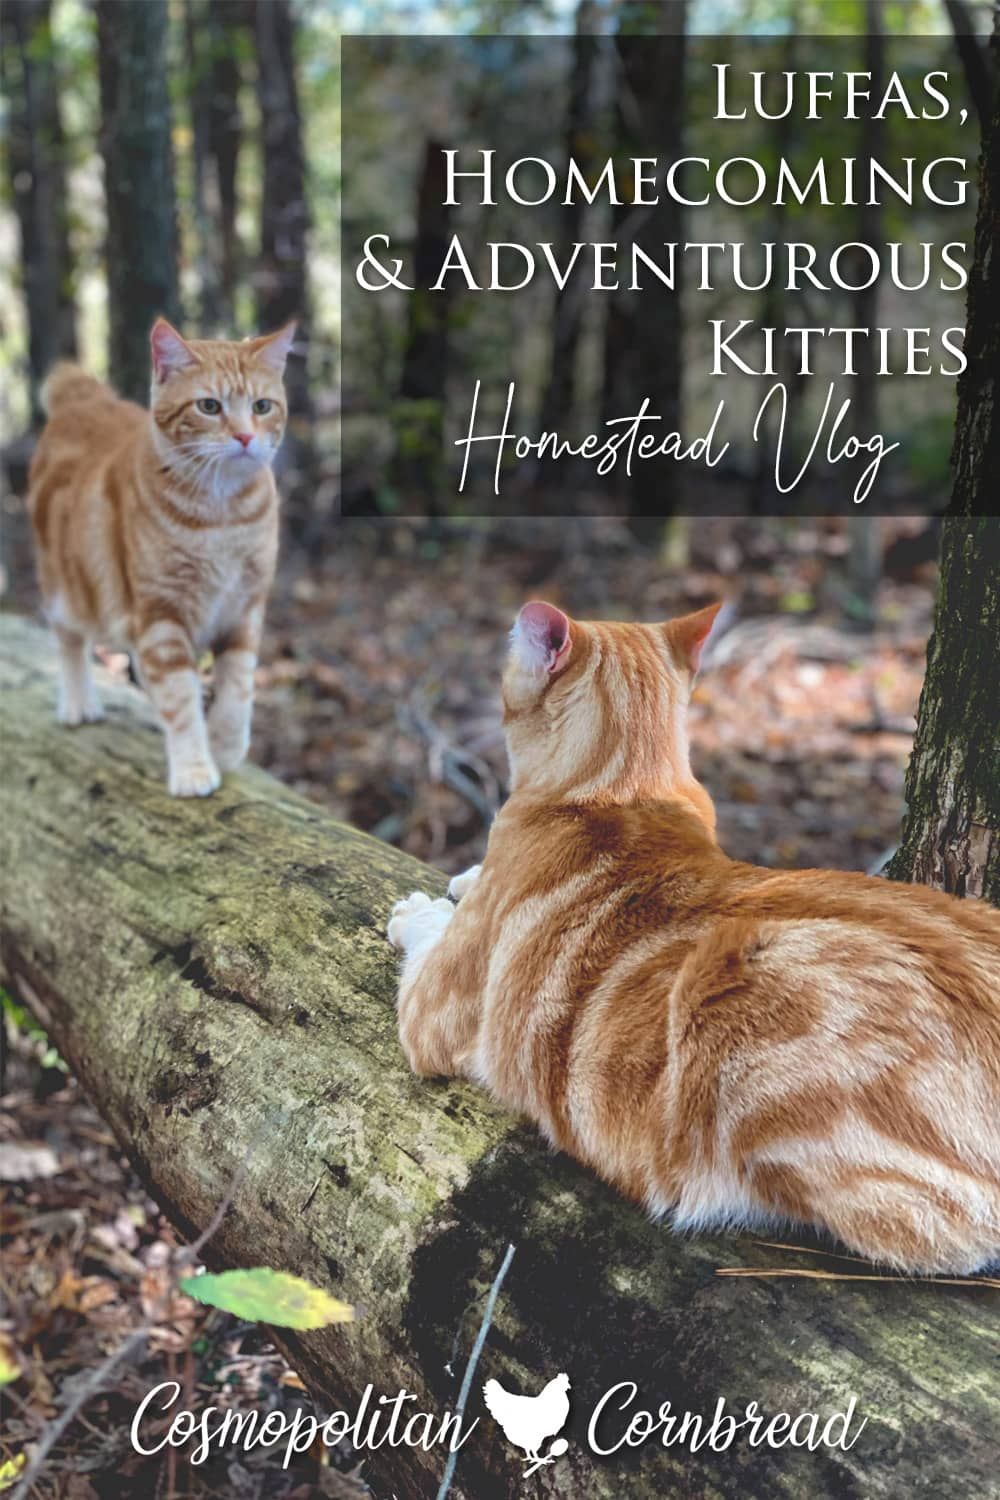 Luffas, Homecoming & Adventurous Kitties | Homestead Vlog - Come along with us as we do some pre-hunting season checks...with some furry tag-a-longs.